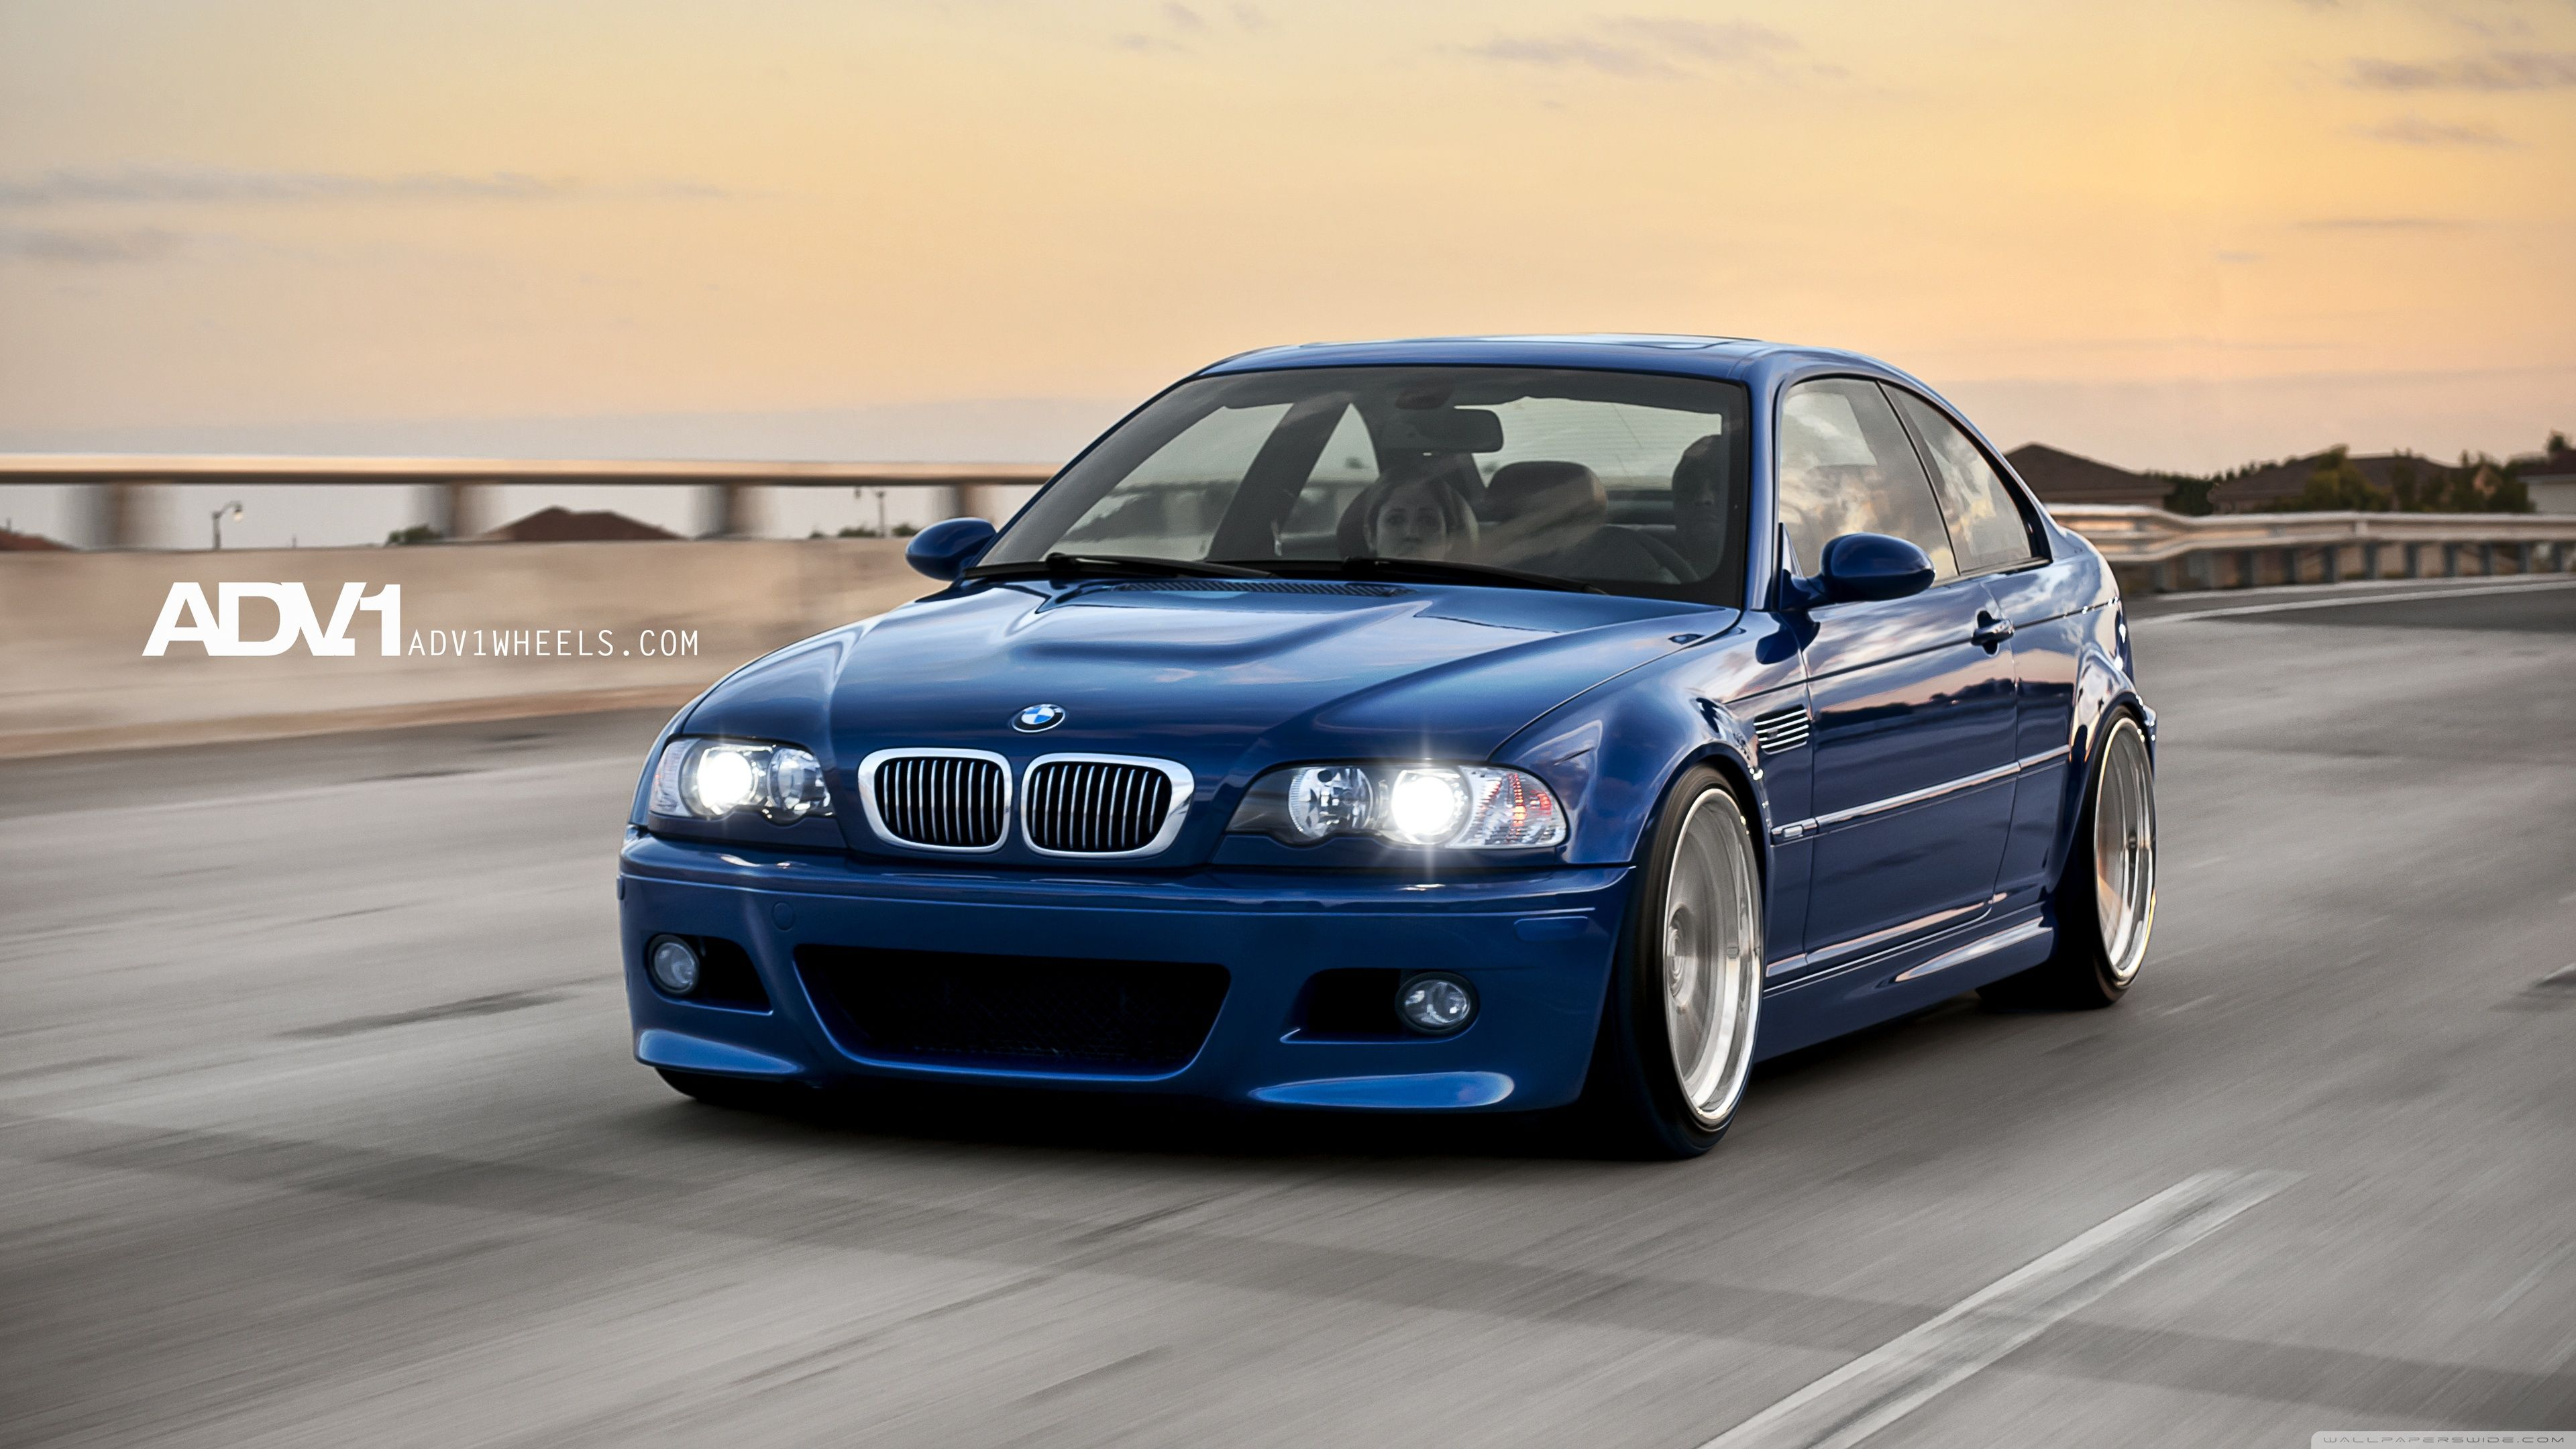 Bmw E46 4k Wallpapers Top Free Bmw E46 4k Backgrounds